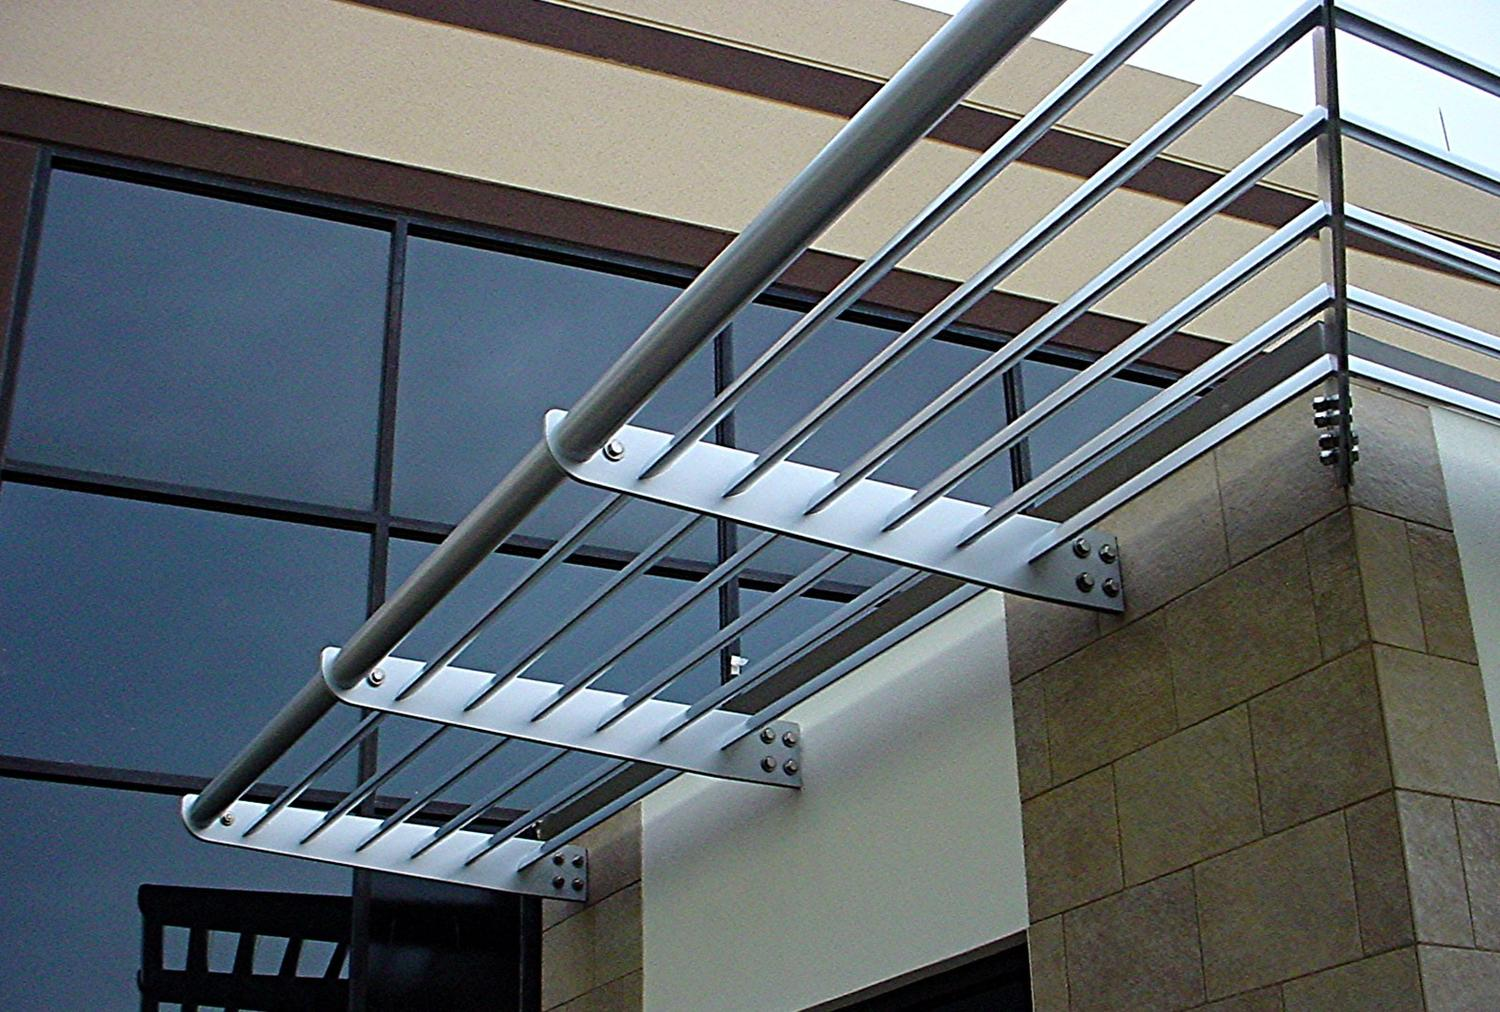 Aluminum sunshades on an office building enterance